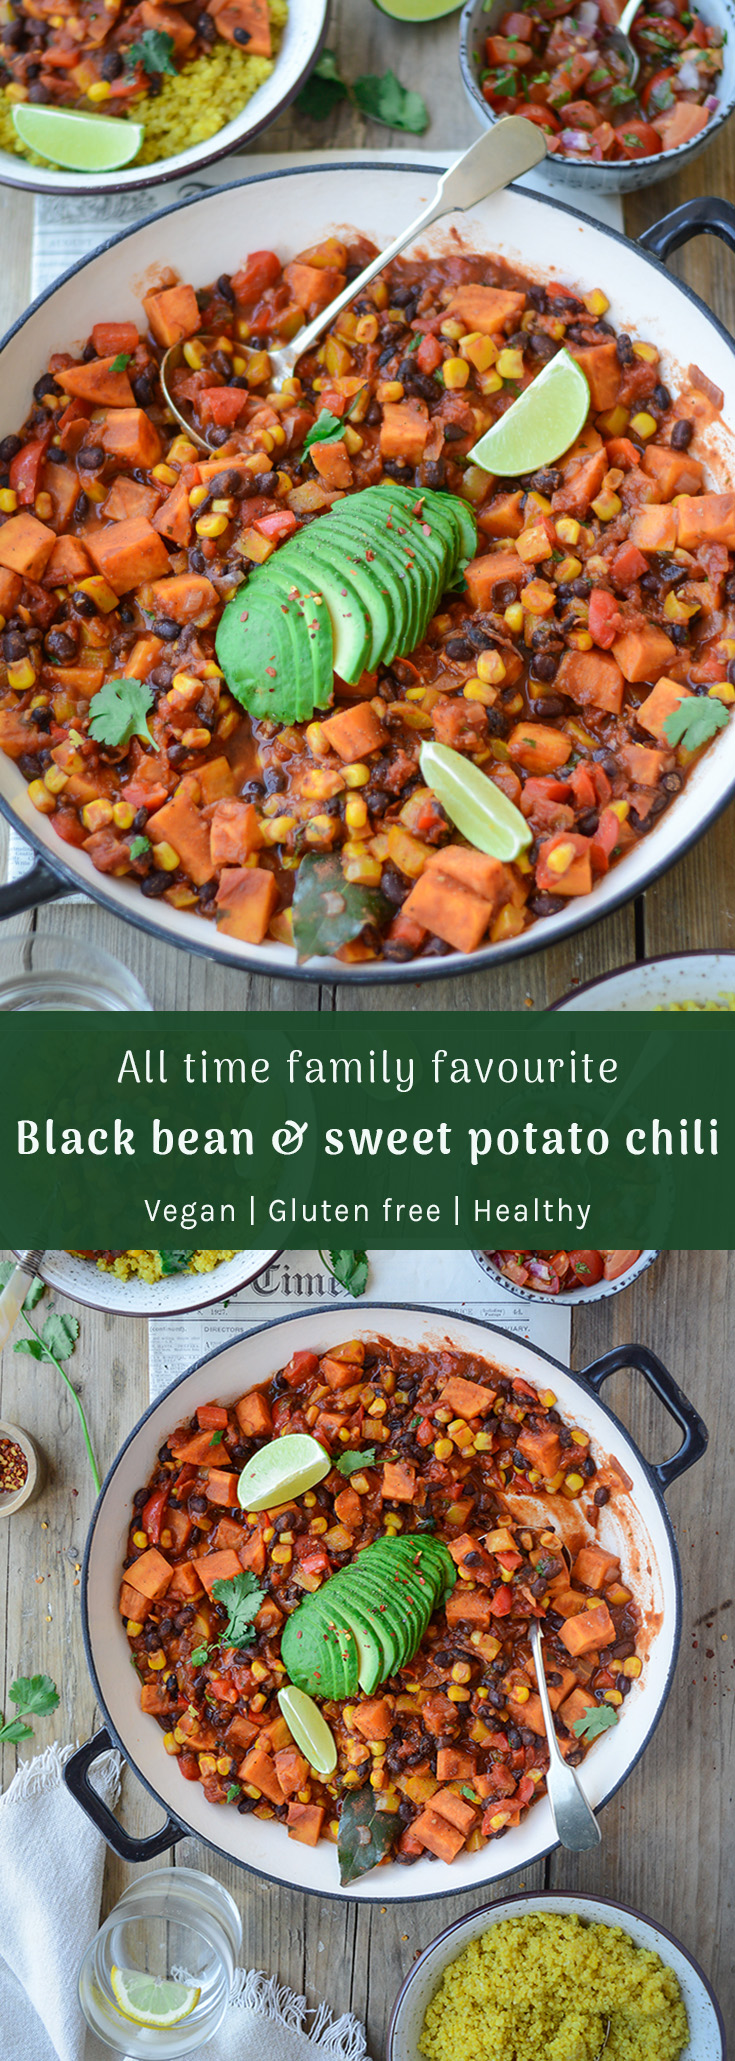 All time family favourite black bean & sweet potato vegan chili via Fit Foodie Nutter #vegandinner #familyfriendly #meatfreemonday #cleaneating